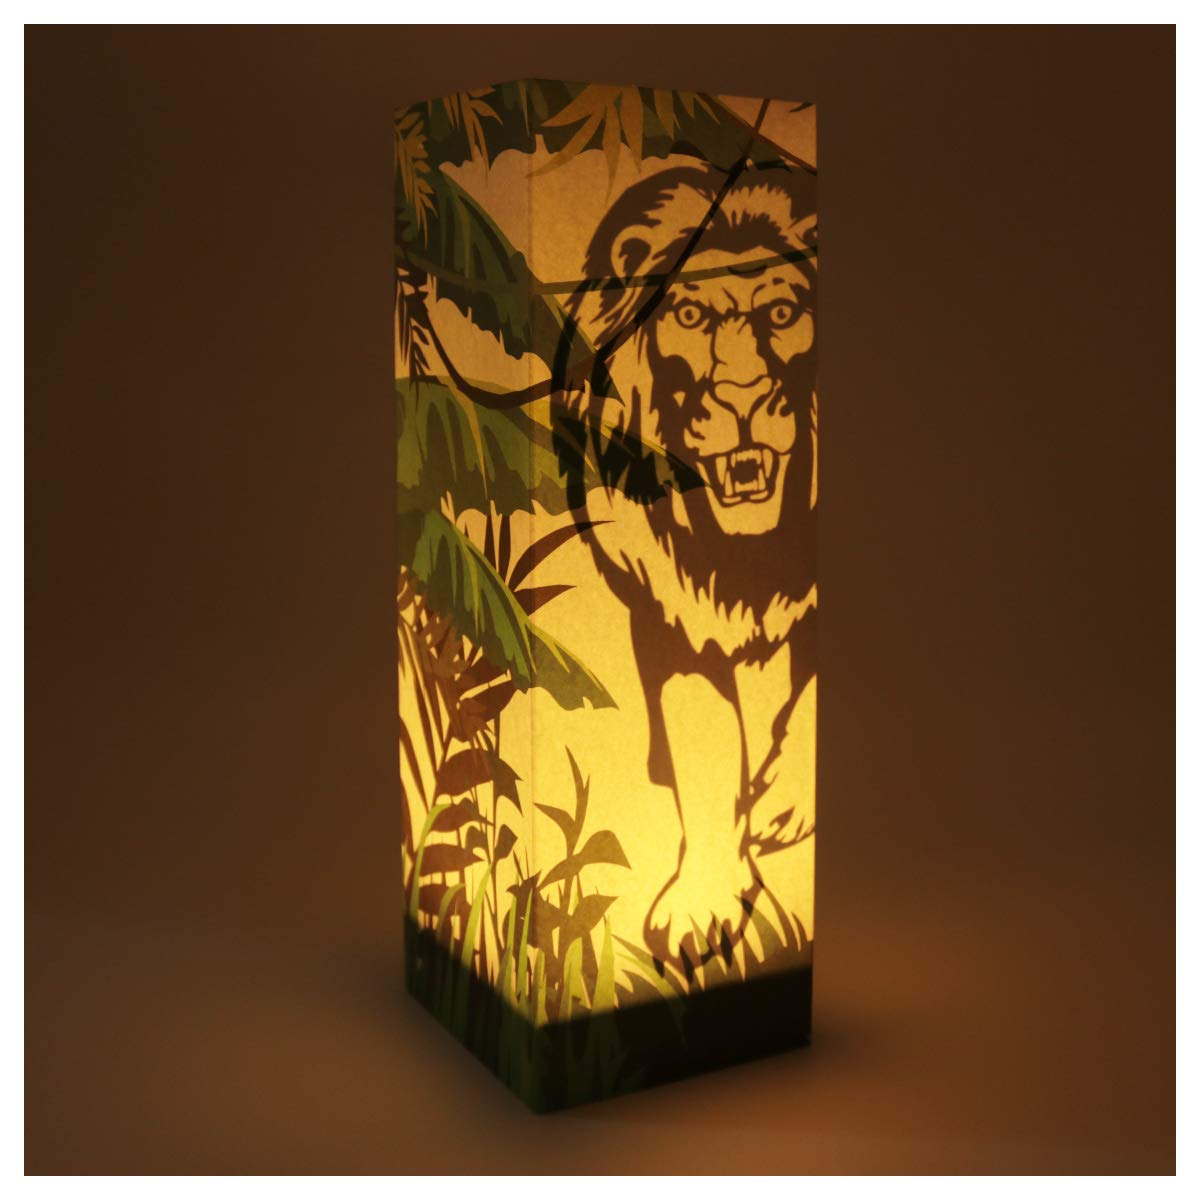 Lion Paper Lanterns Decorative Creative Novelty Paper Lanterns Collapsible Safety Material USB Low Power Energy Save Lamp Hall Bedroom Baby Room Christmas Decor Kids Adult Friends Gift